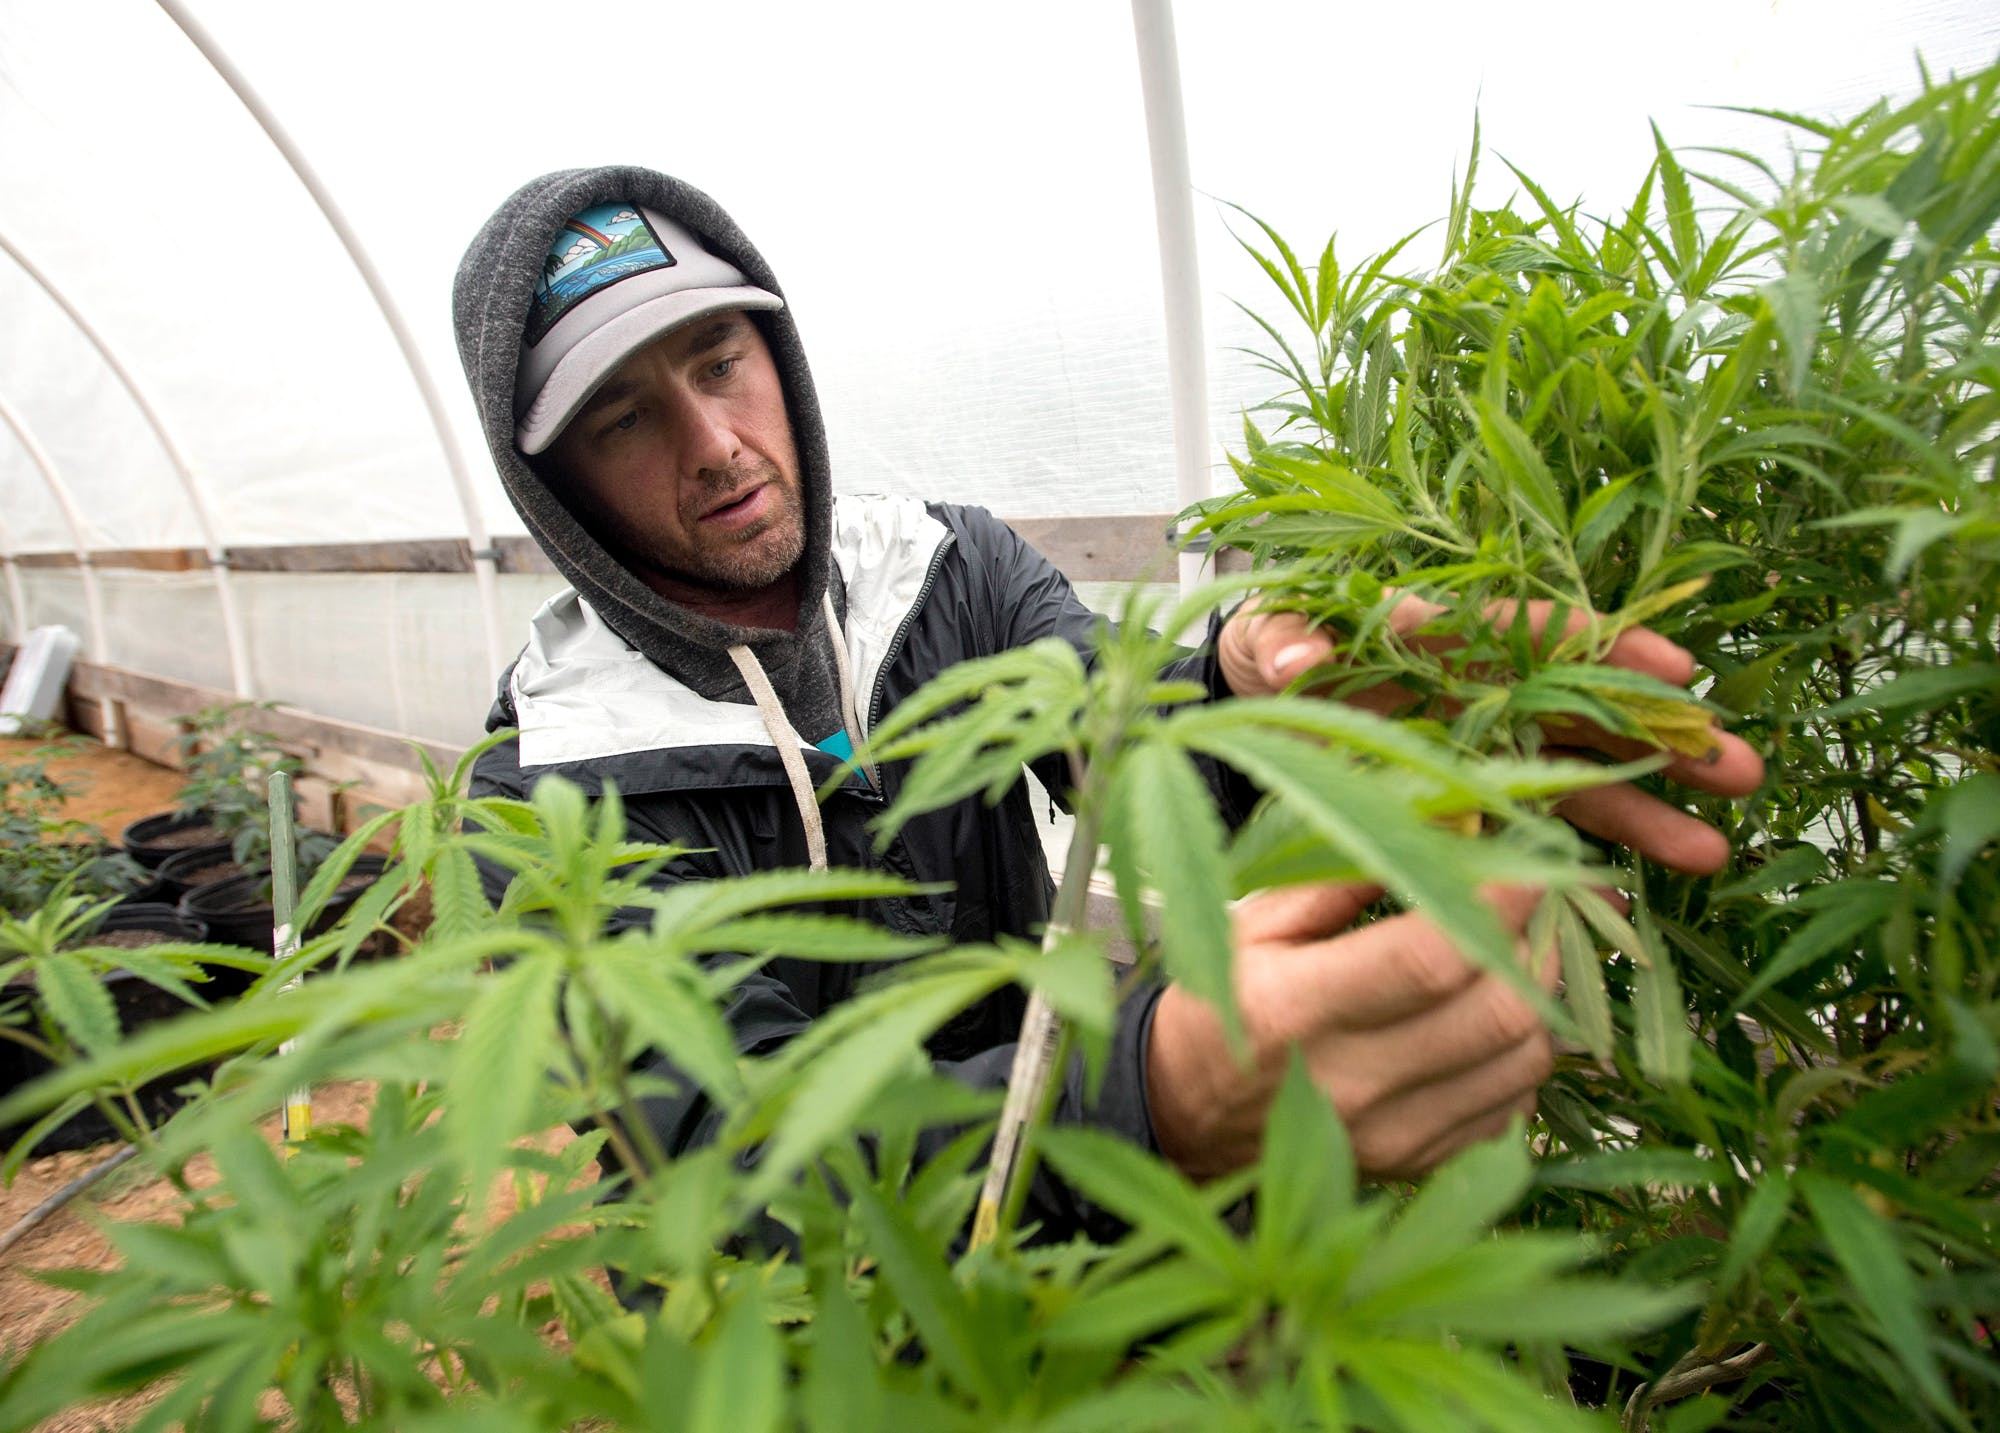 How to grow weed with as little effort as possible